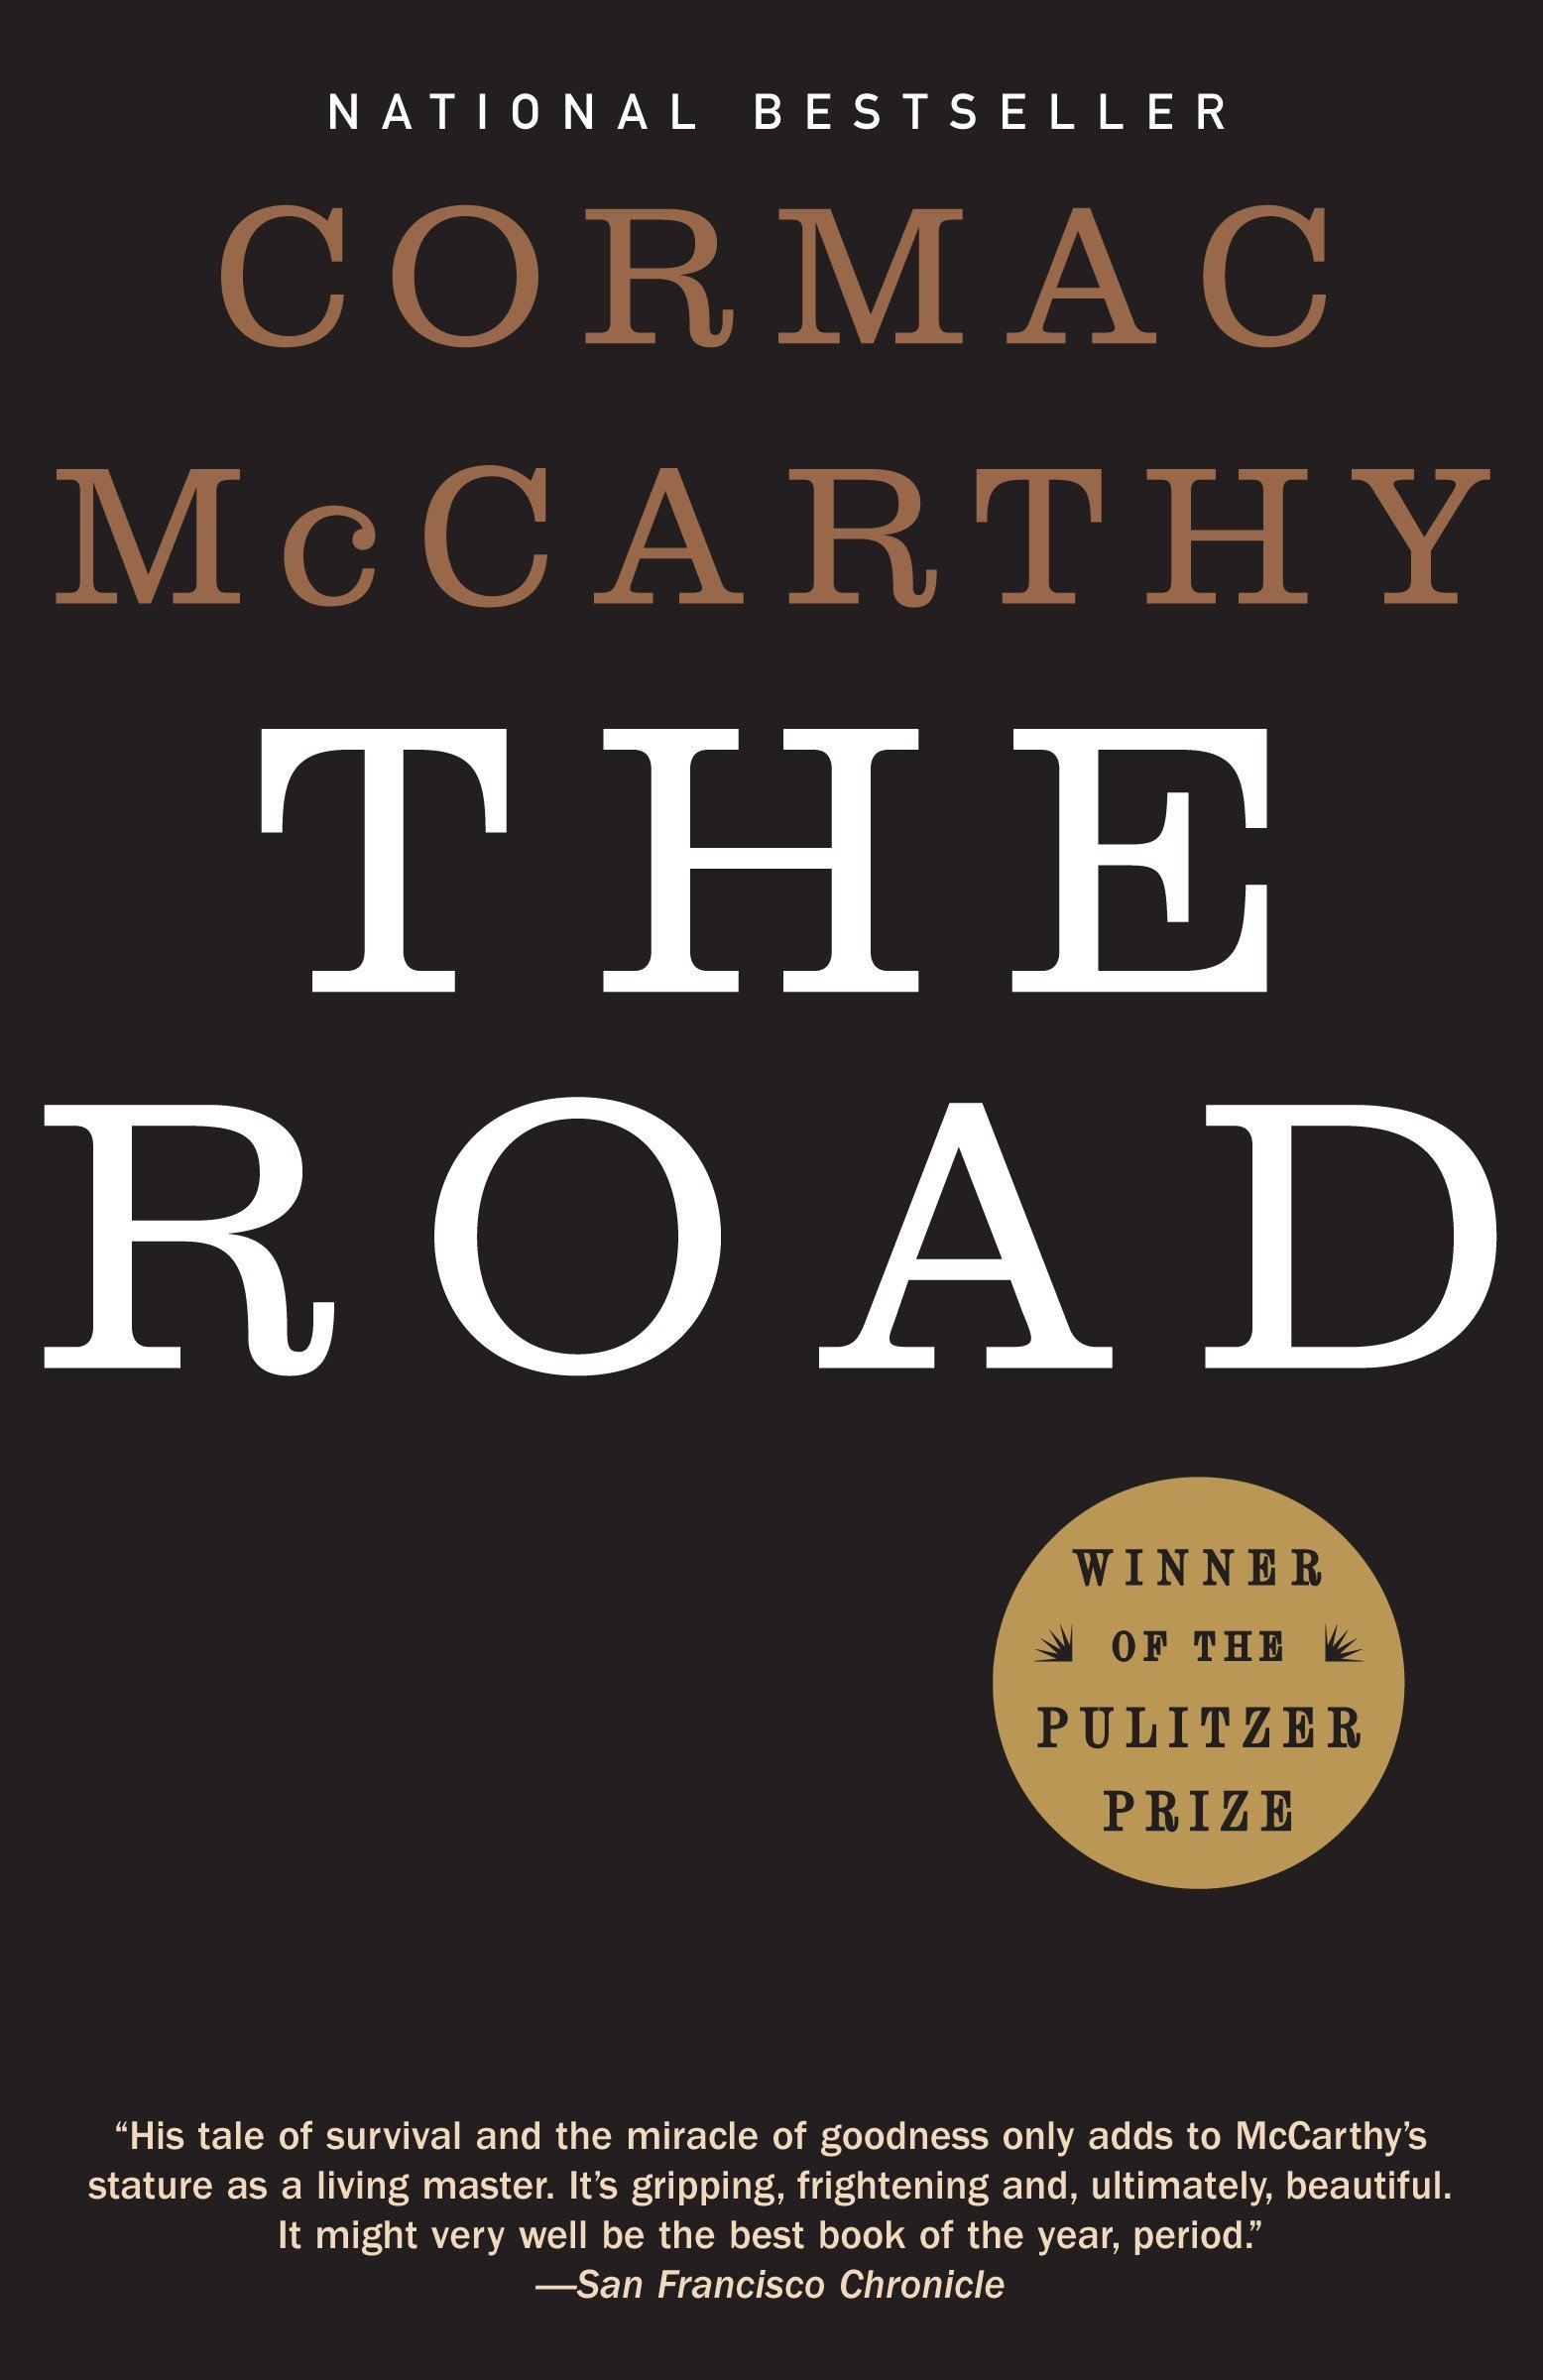 """A book cover of """"The Road"""" by Cormac McCarthy."""